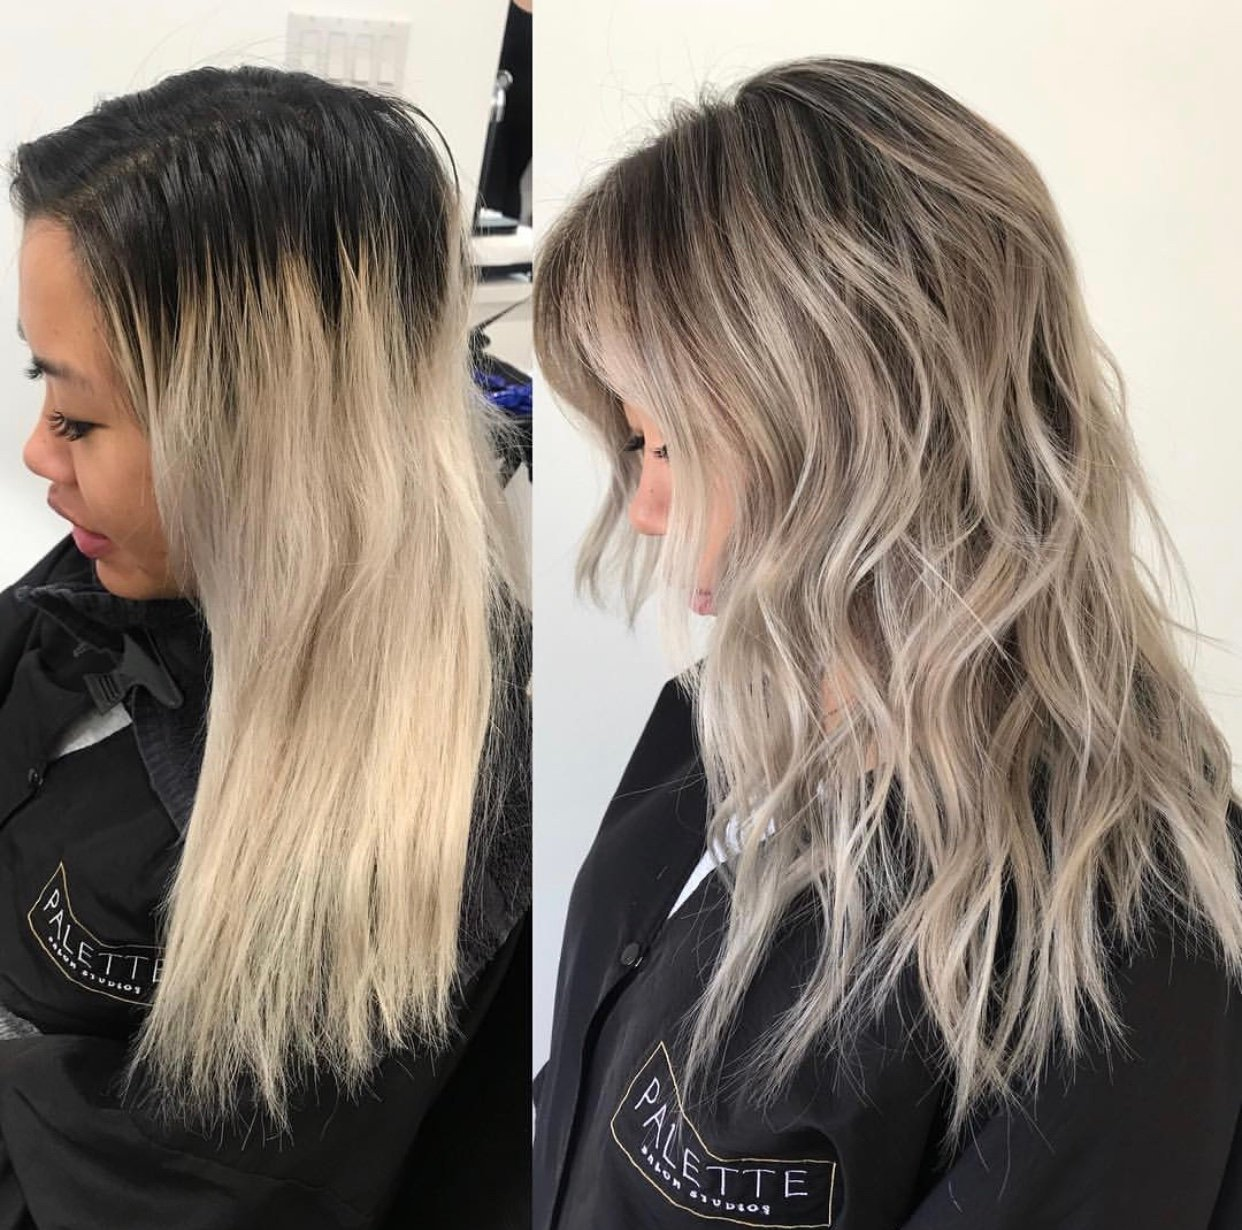 HAIR COLOR FORMULA: Transitioning Rooty Blonde to More Natural, Beigy-Blonde